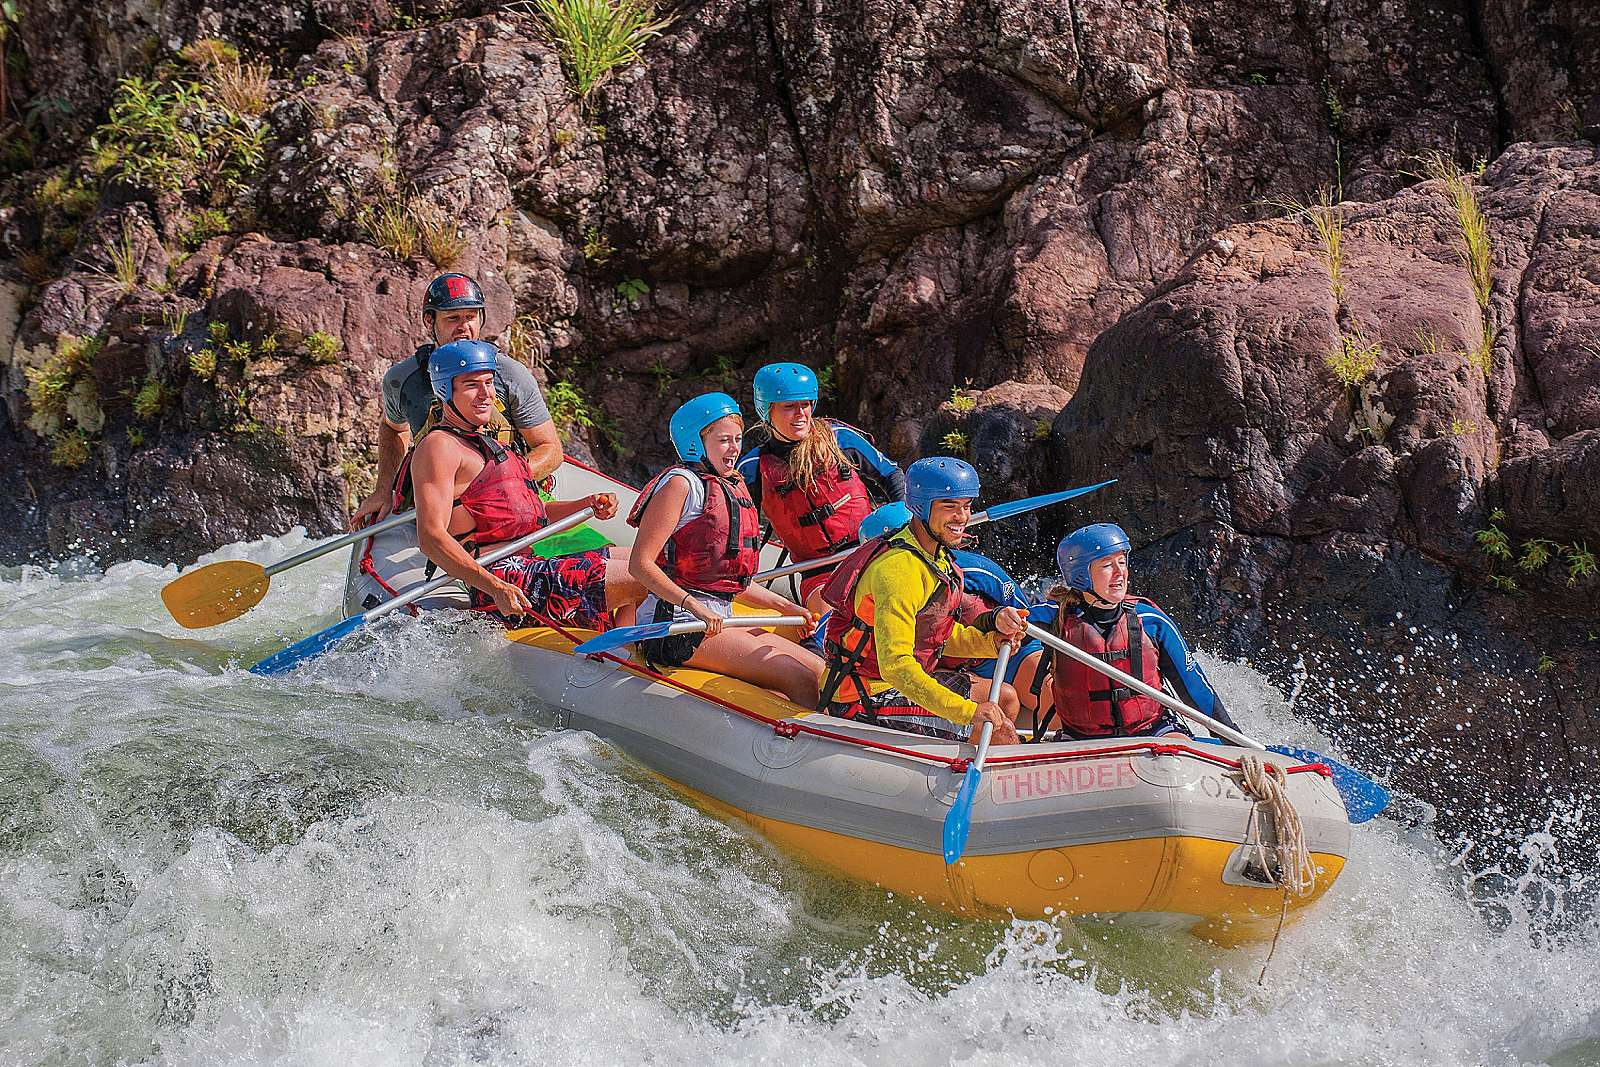 Image for Raging Thunder - Rafting & Canyoning - Xpass - Raft ~ Skydive - Tully